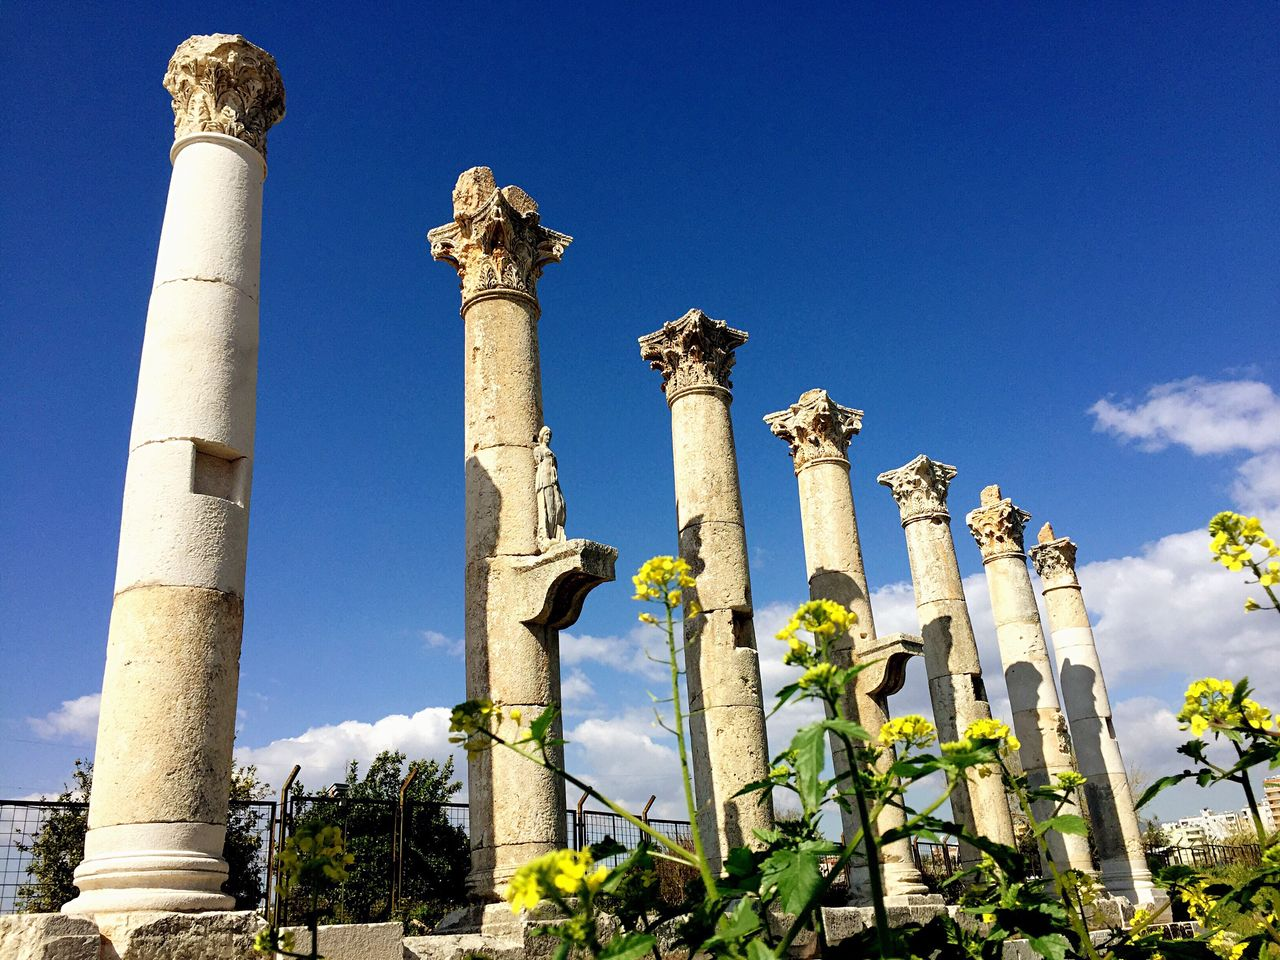 Low angle view of old ruins against blue sky